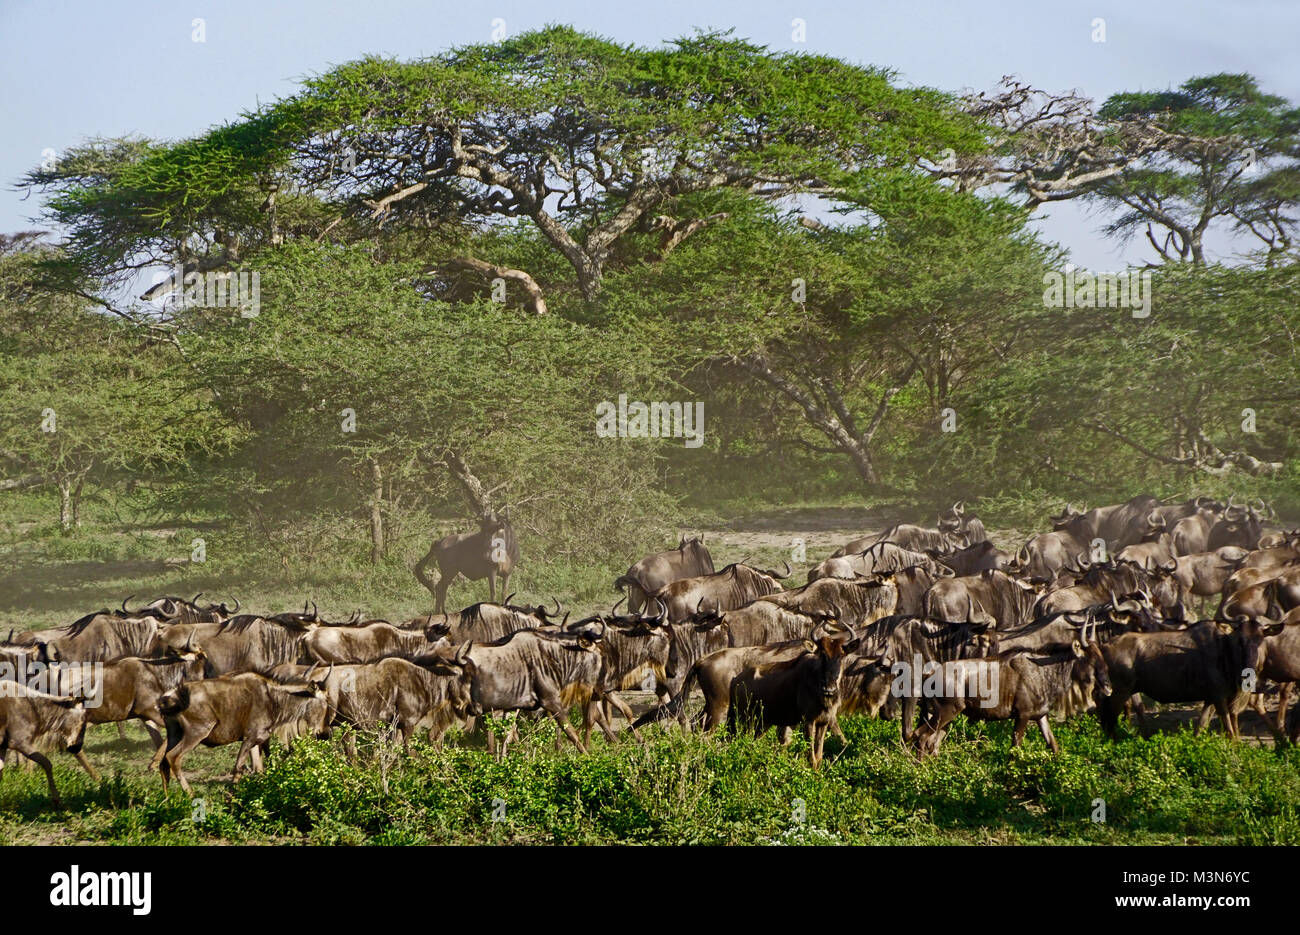 Herd of wildebeest gathering for great migration under umbrella acacia trees on Serengeti Plains of Tanzania. Stock Photo